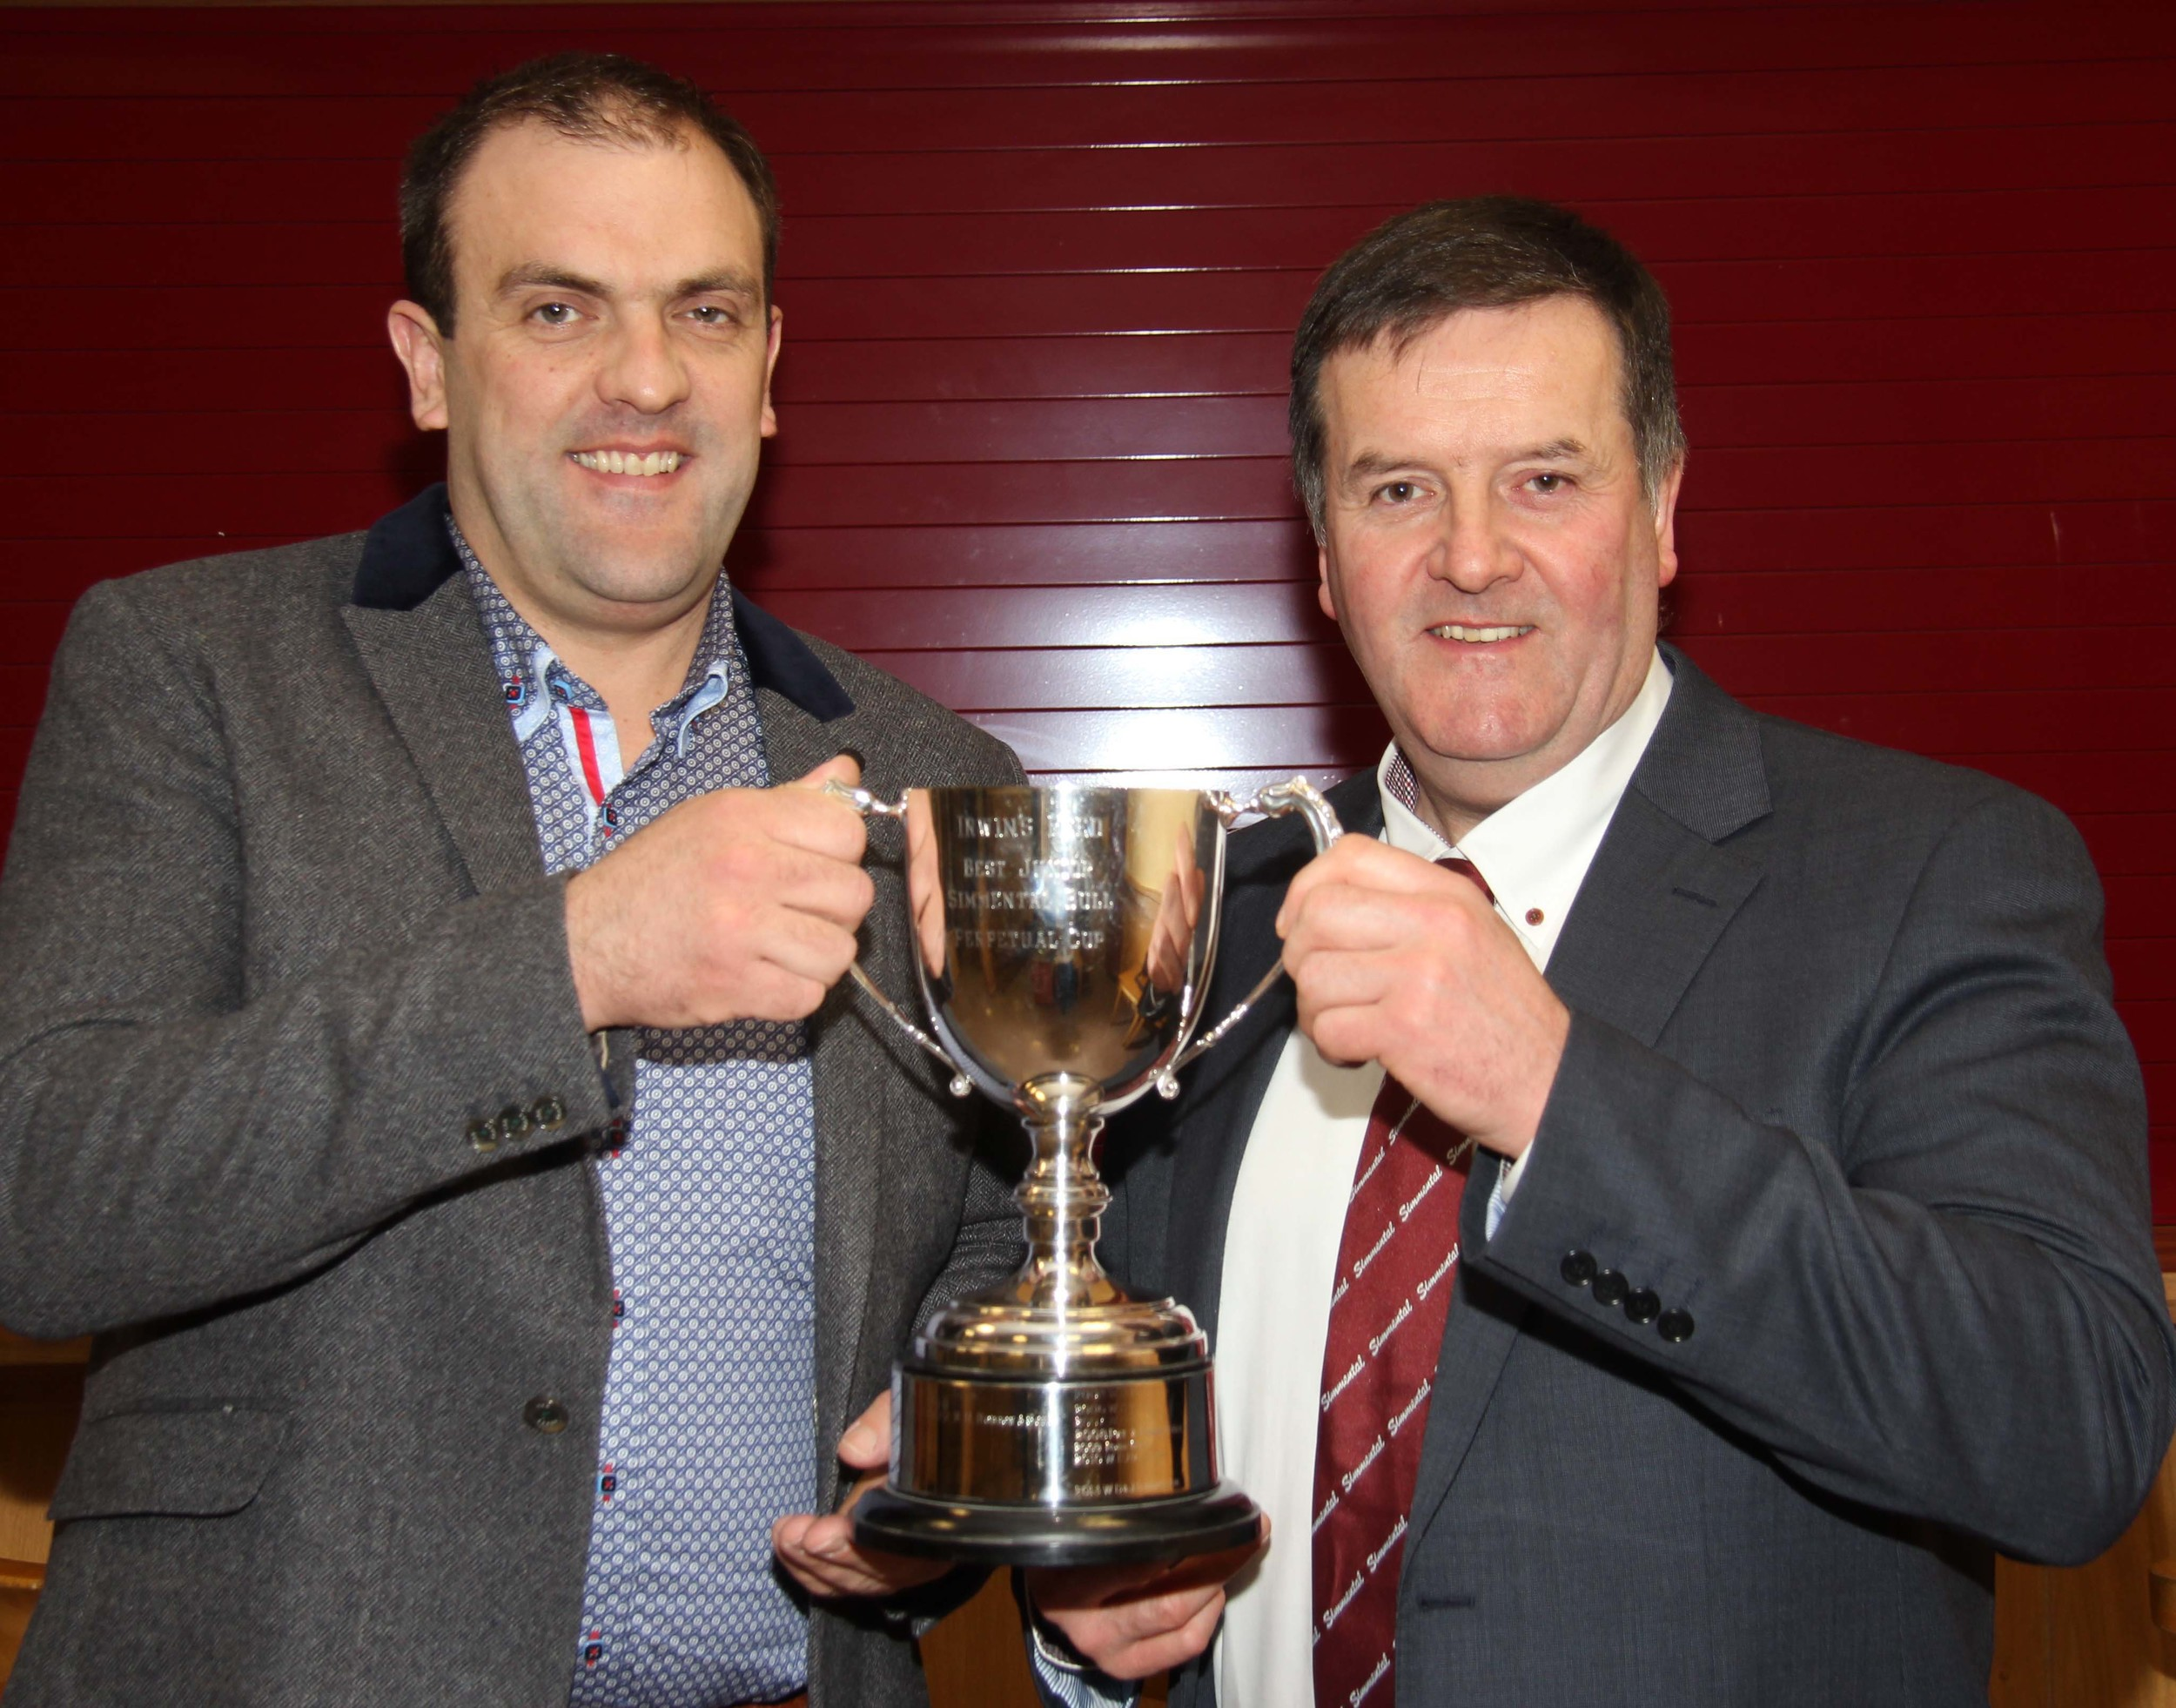 Robin Boyd receives the Irwins Feeds cup for the best junior bull at Clogher Show on behalf of Duncan McDowell, Newtownards, from sponsor Ian Cummins.